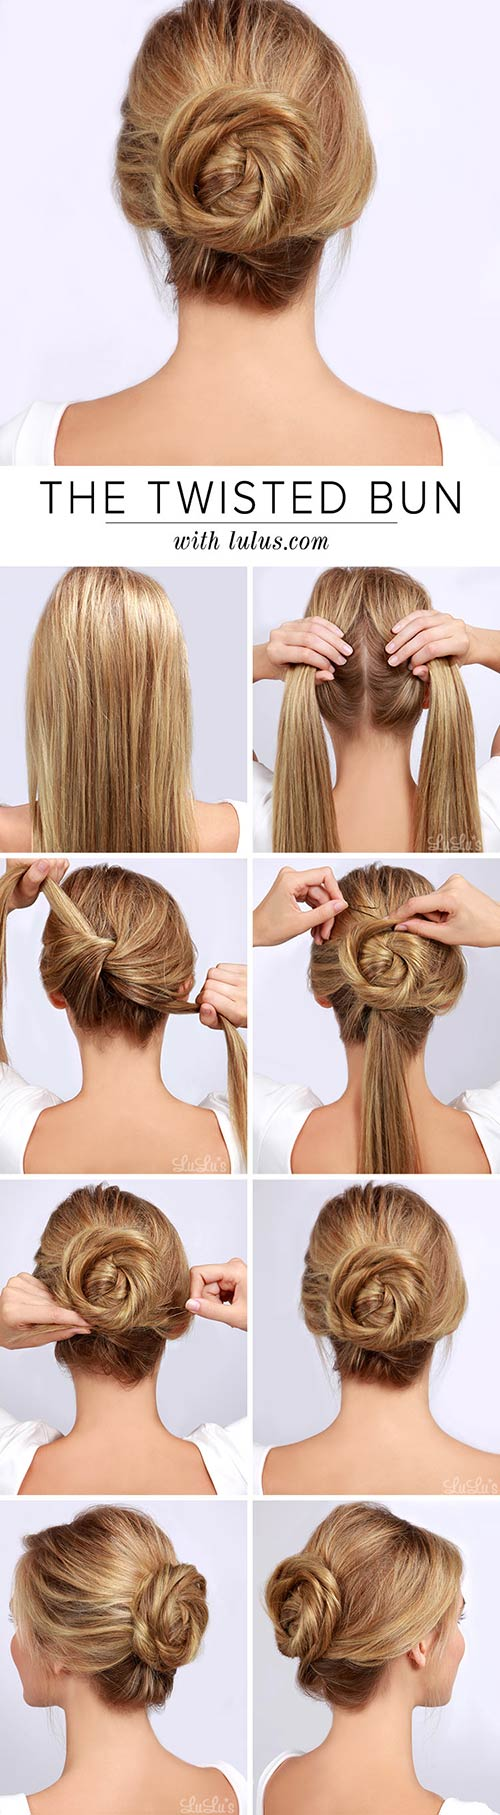 20 Awesome Hairstyles For Girls With Long Hair A Haircut